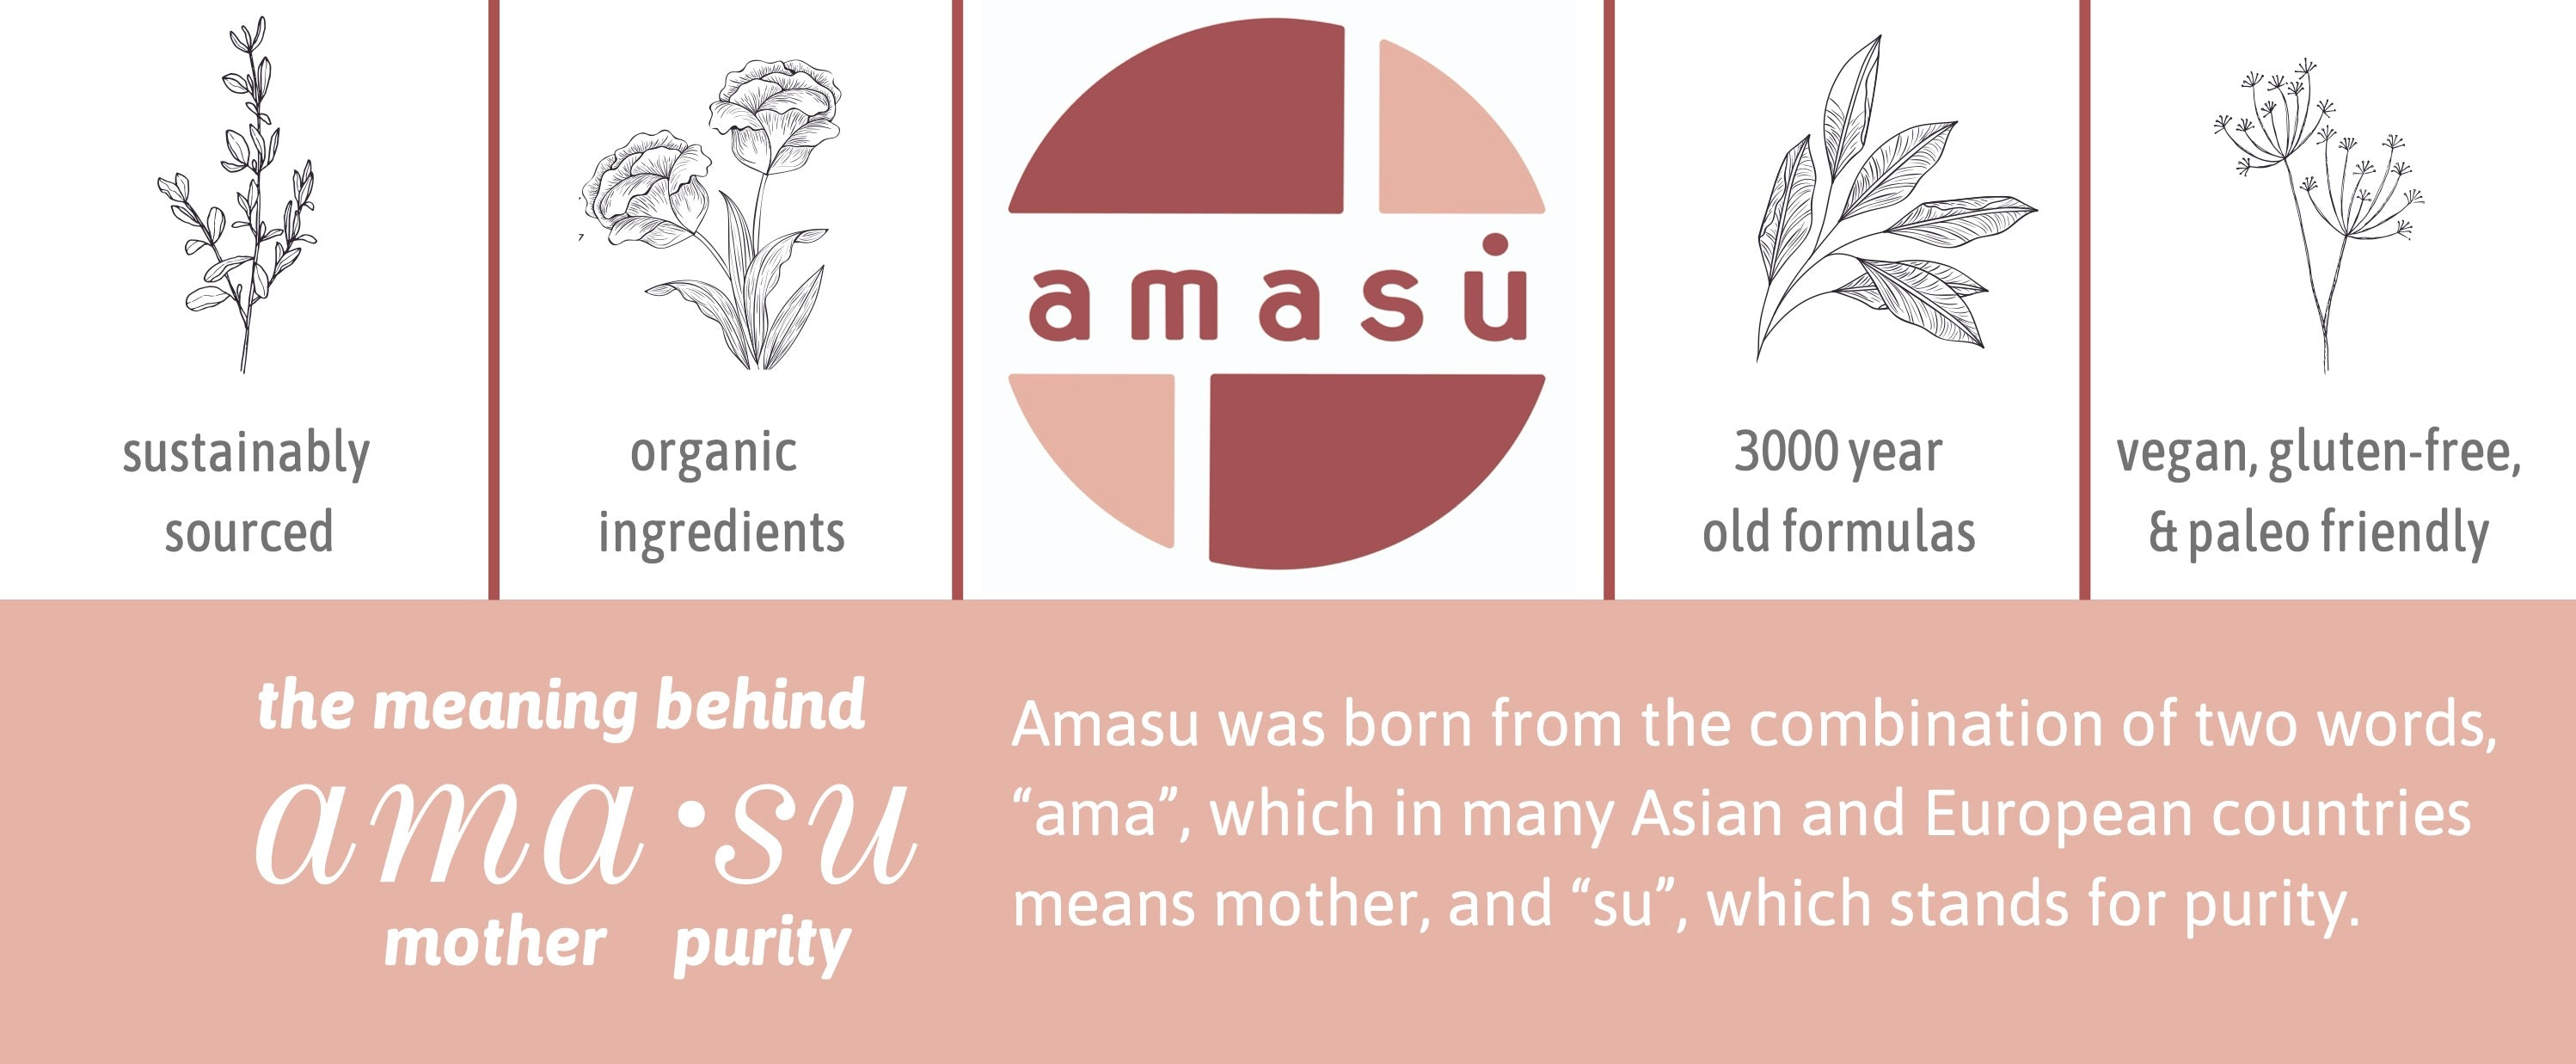 """Sustainably sourced, organic ingredients, 3000 year old formulas, and vegan, gluten-free, and paleo friendly. The meaning behind Amasu: Amasu was born from the combination of two words, """"ama"""", which in many Asian and European countries means mother, and """"su"""", which stands for purity."""